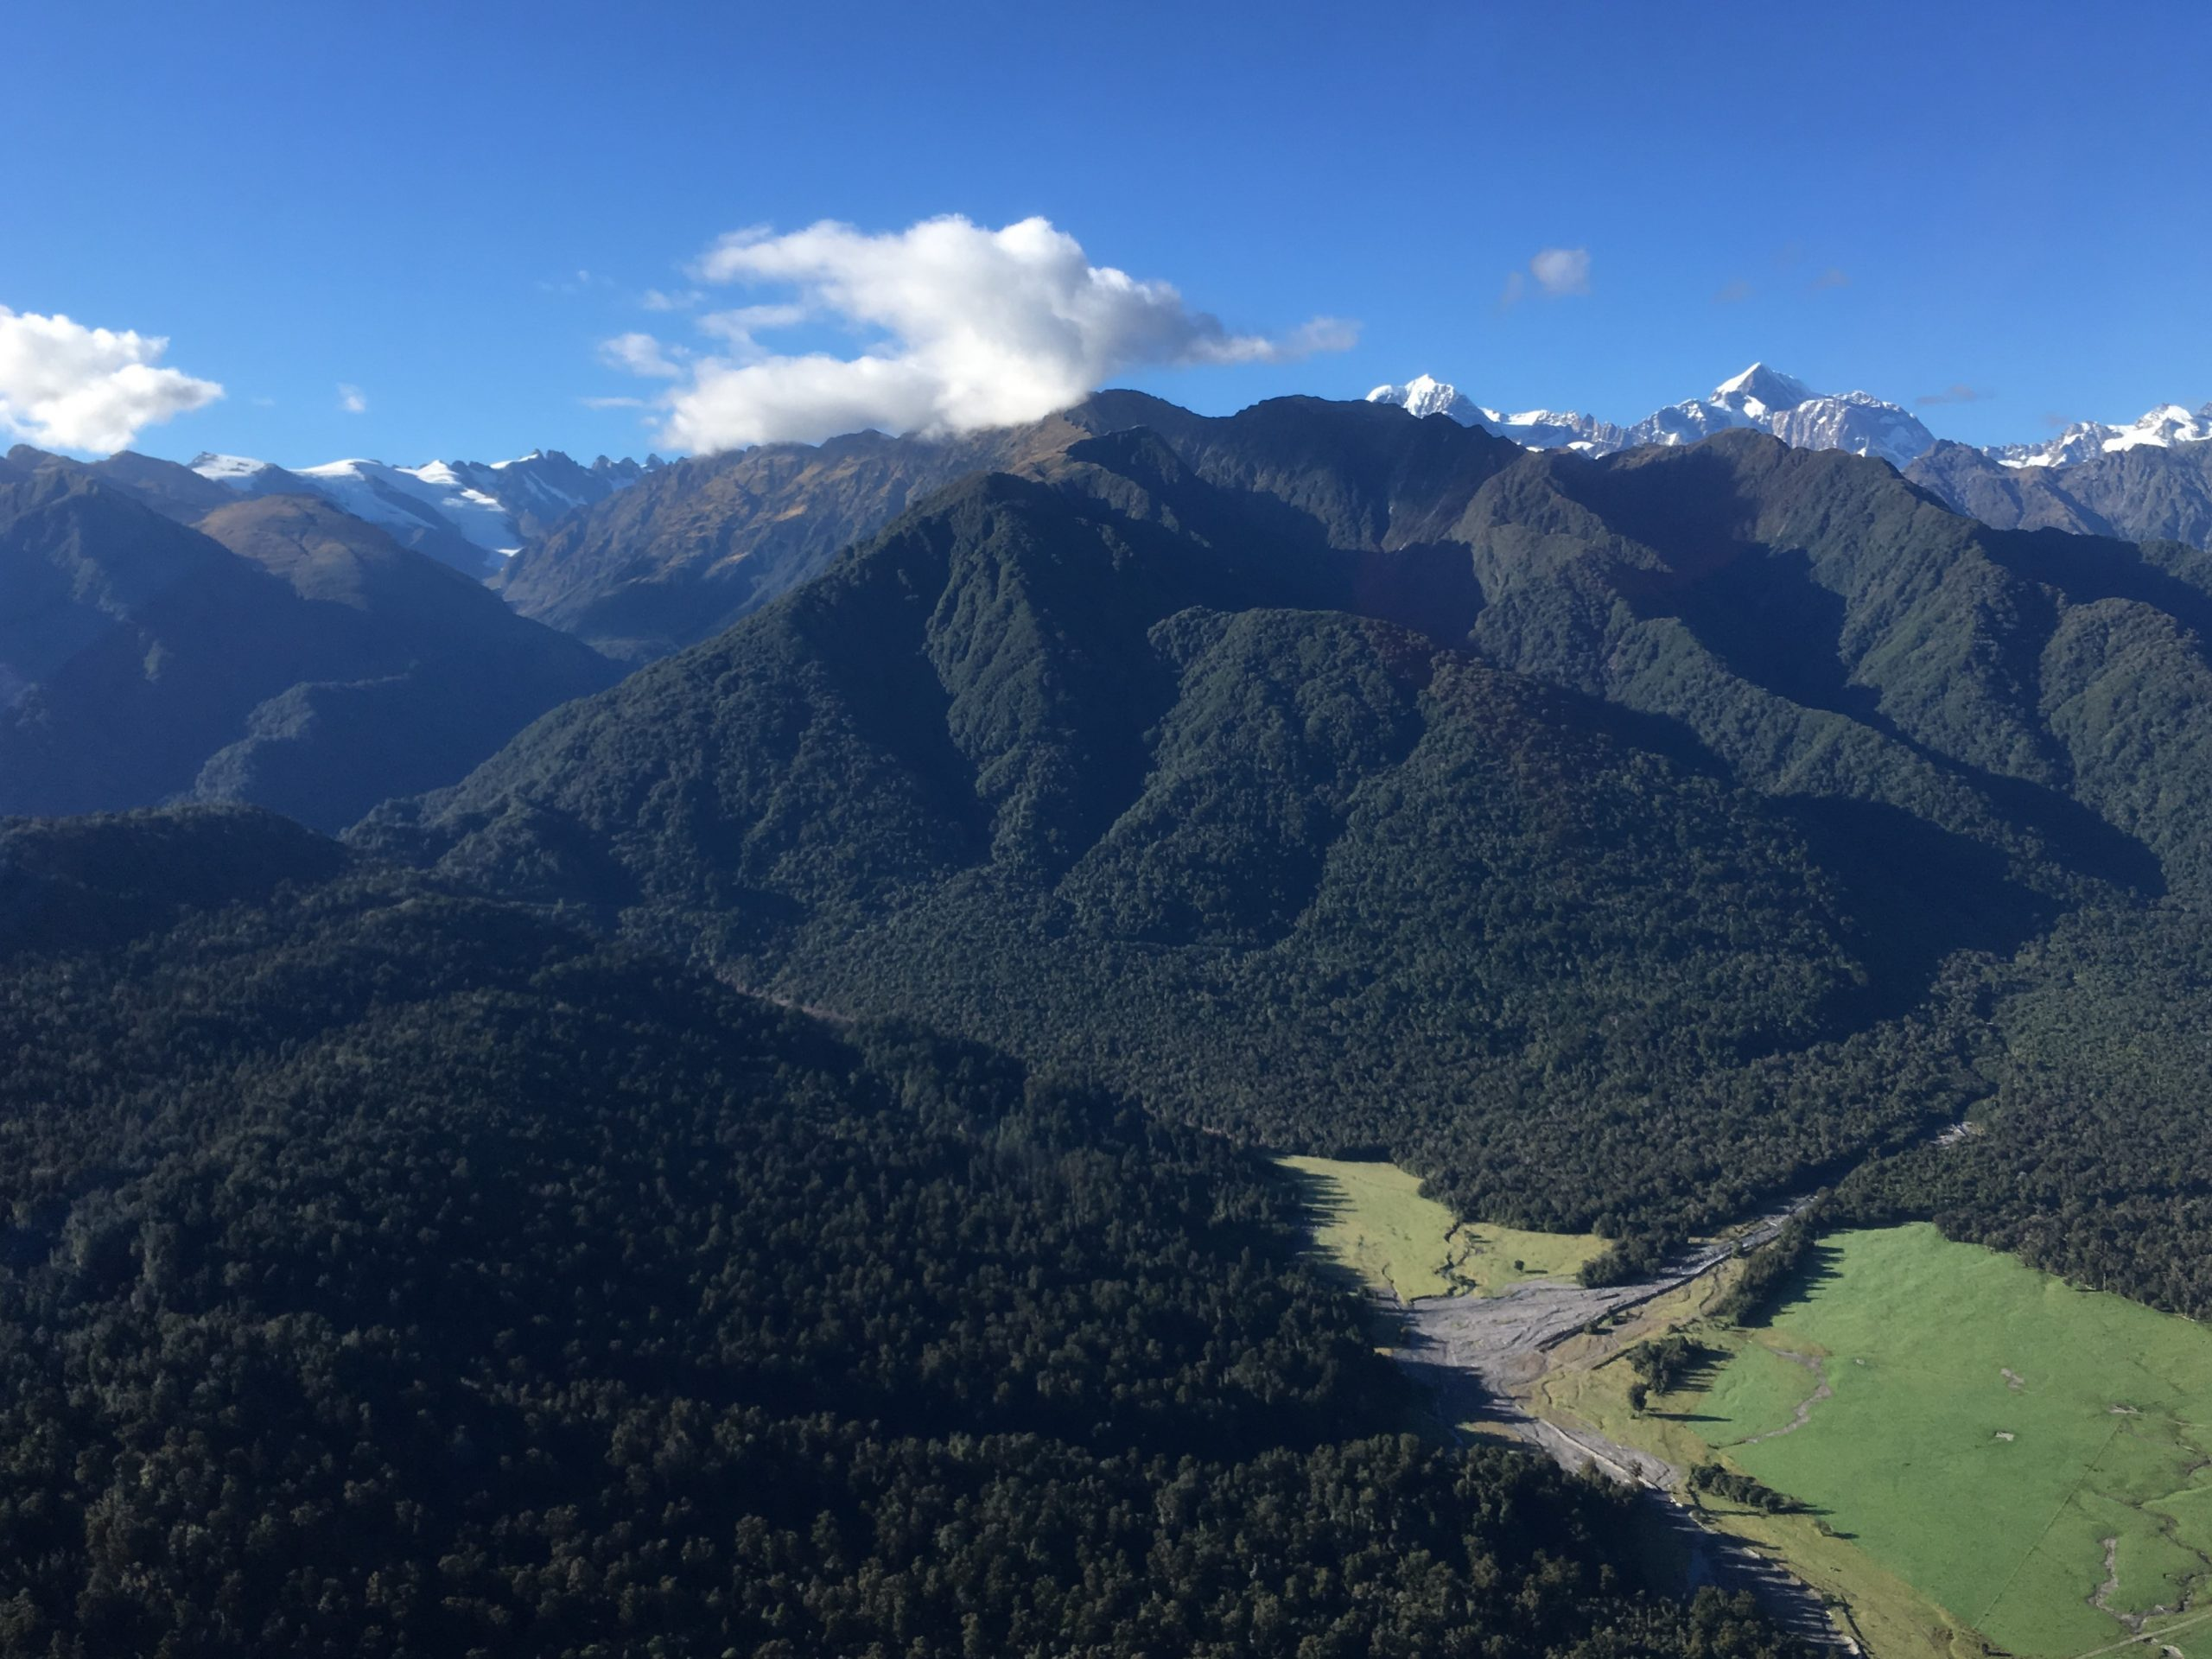 The Southern Alps of New Zealand.